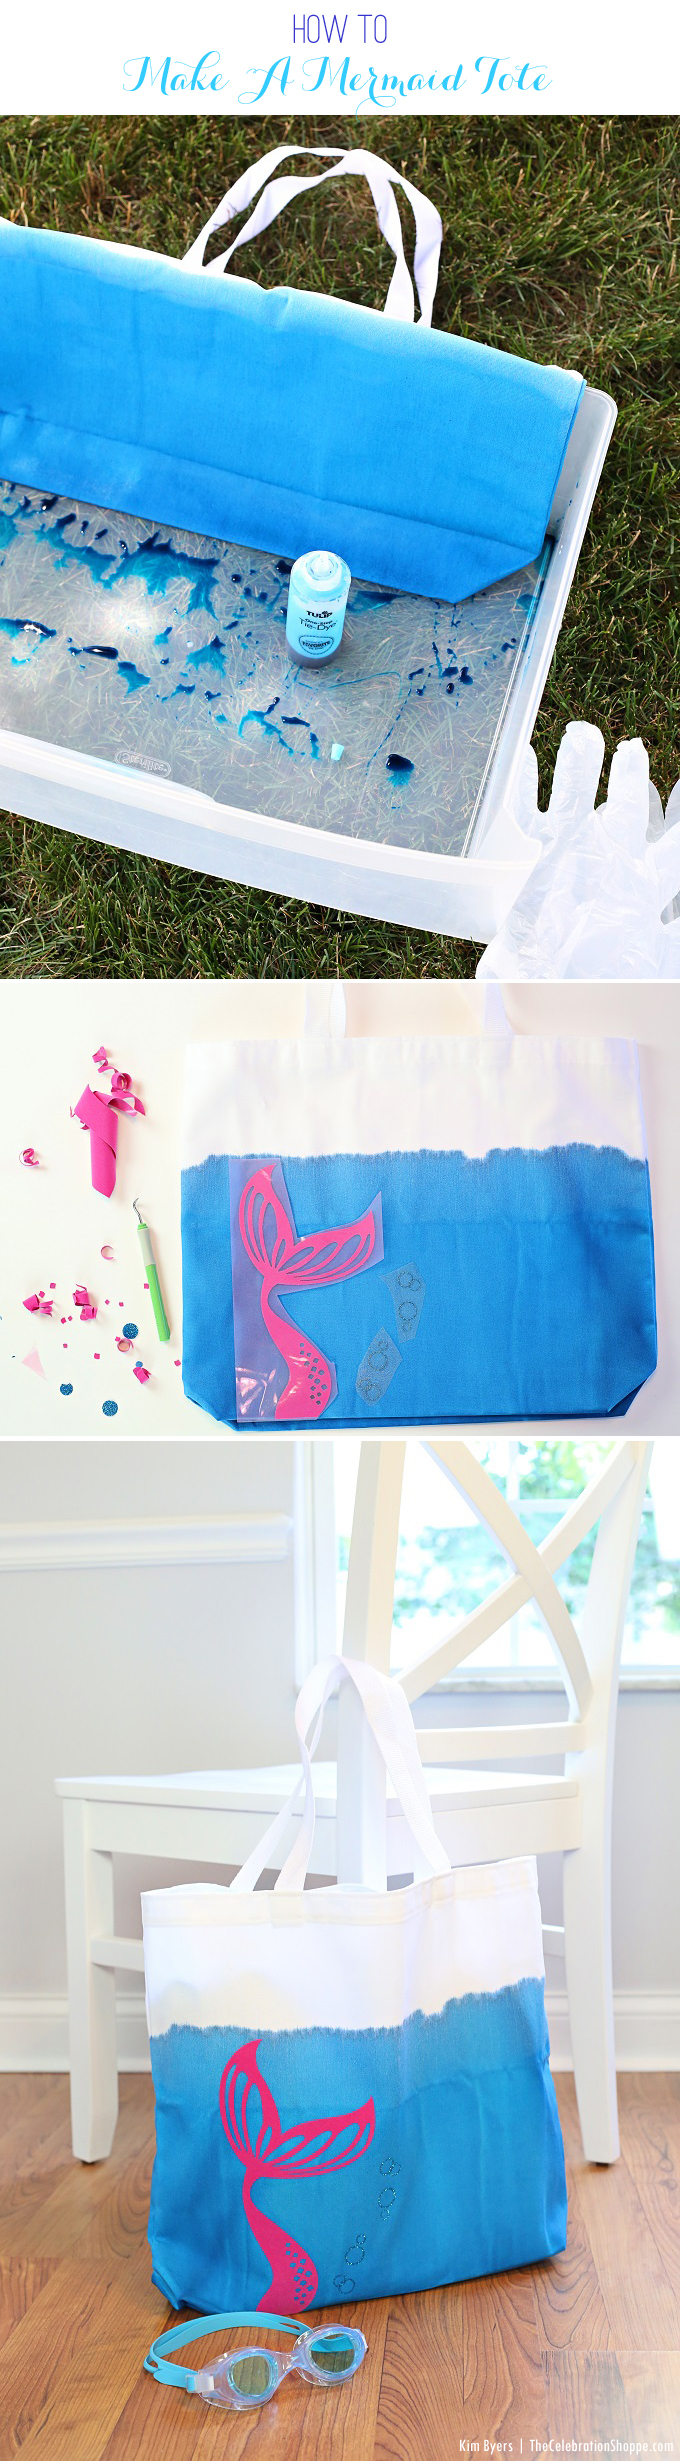 4-How-To-Make-A-Mermaid-Tote-Kim-Byers